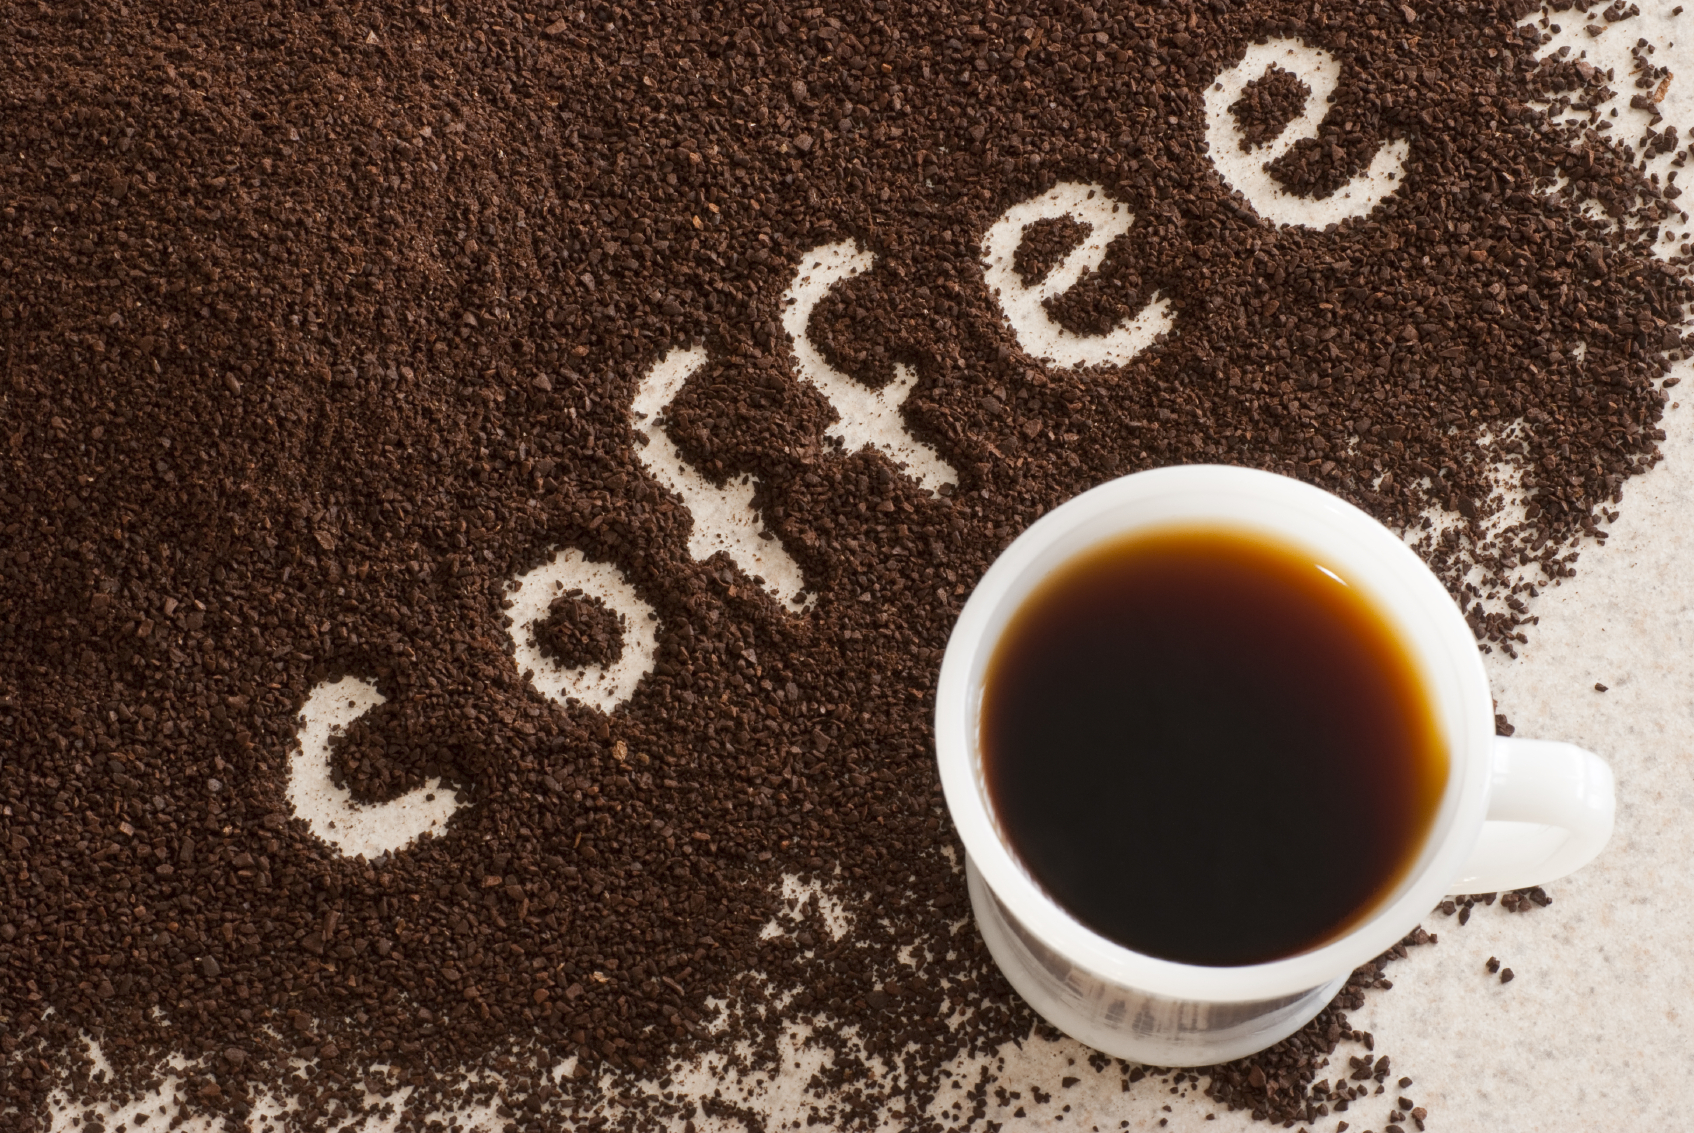 From the Grounds Up: Coffee Becomes Biofuel | Sierra Club